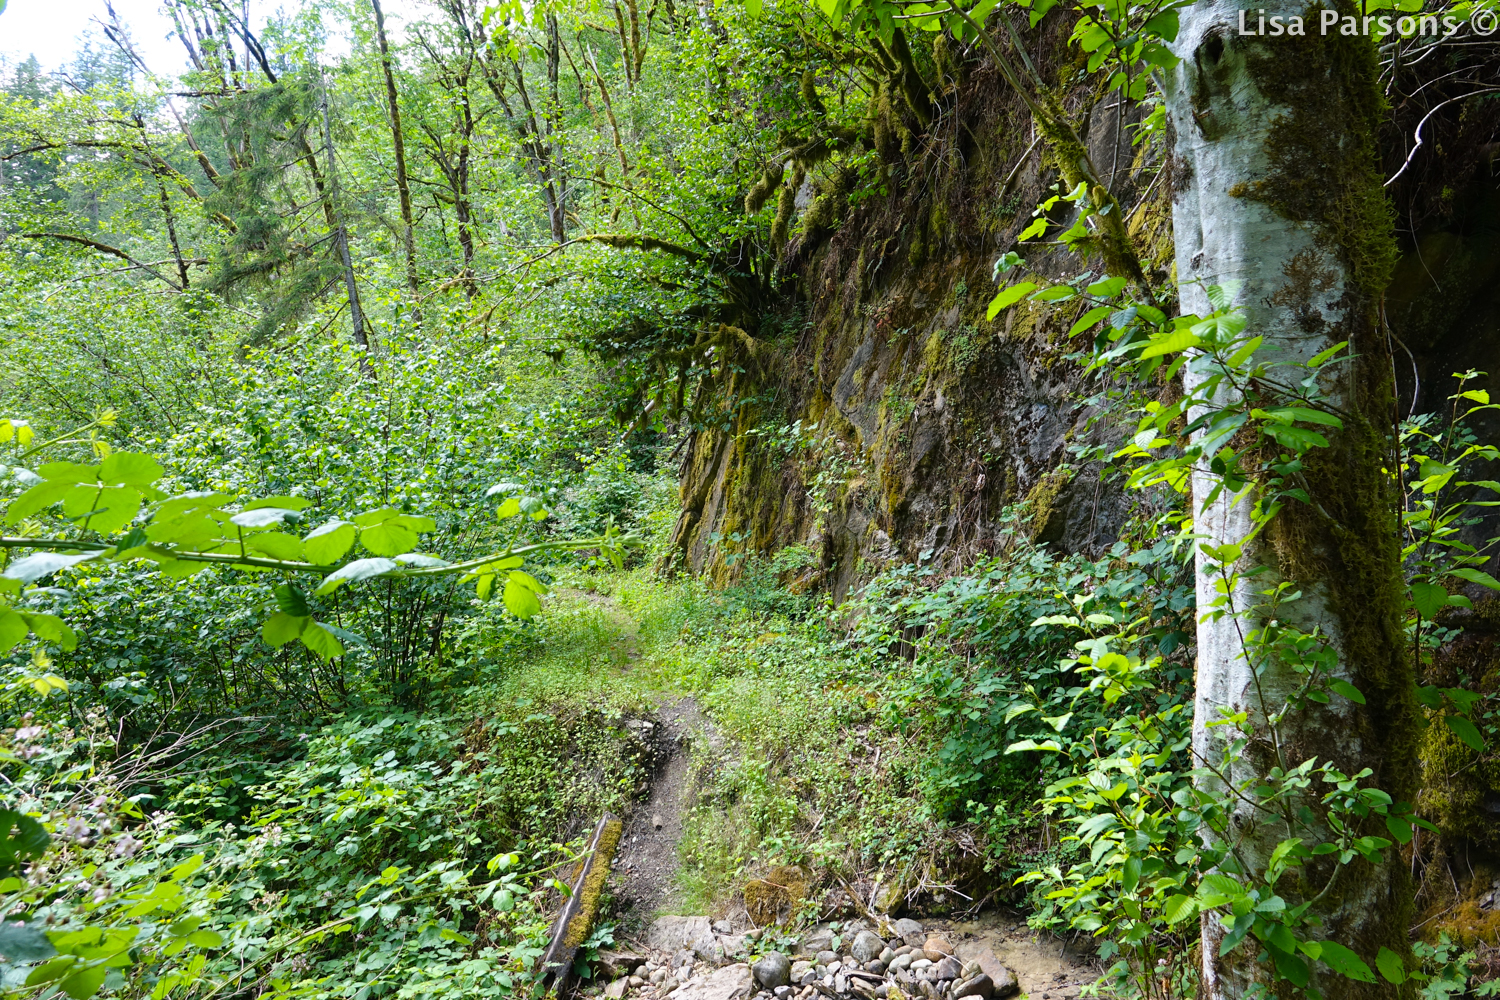 Trail Down to the River